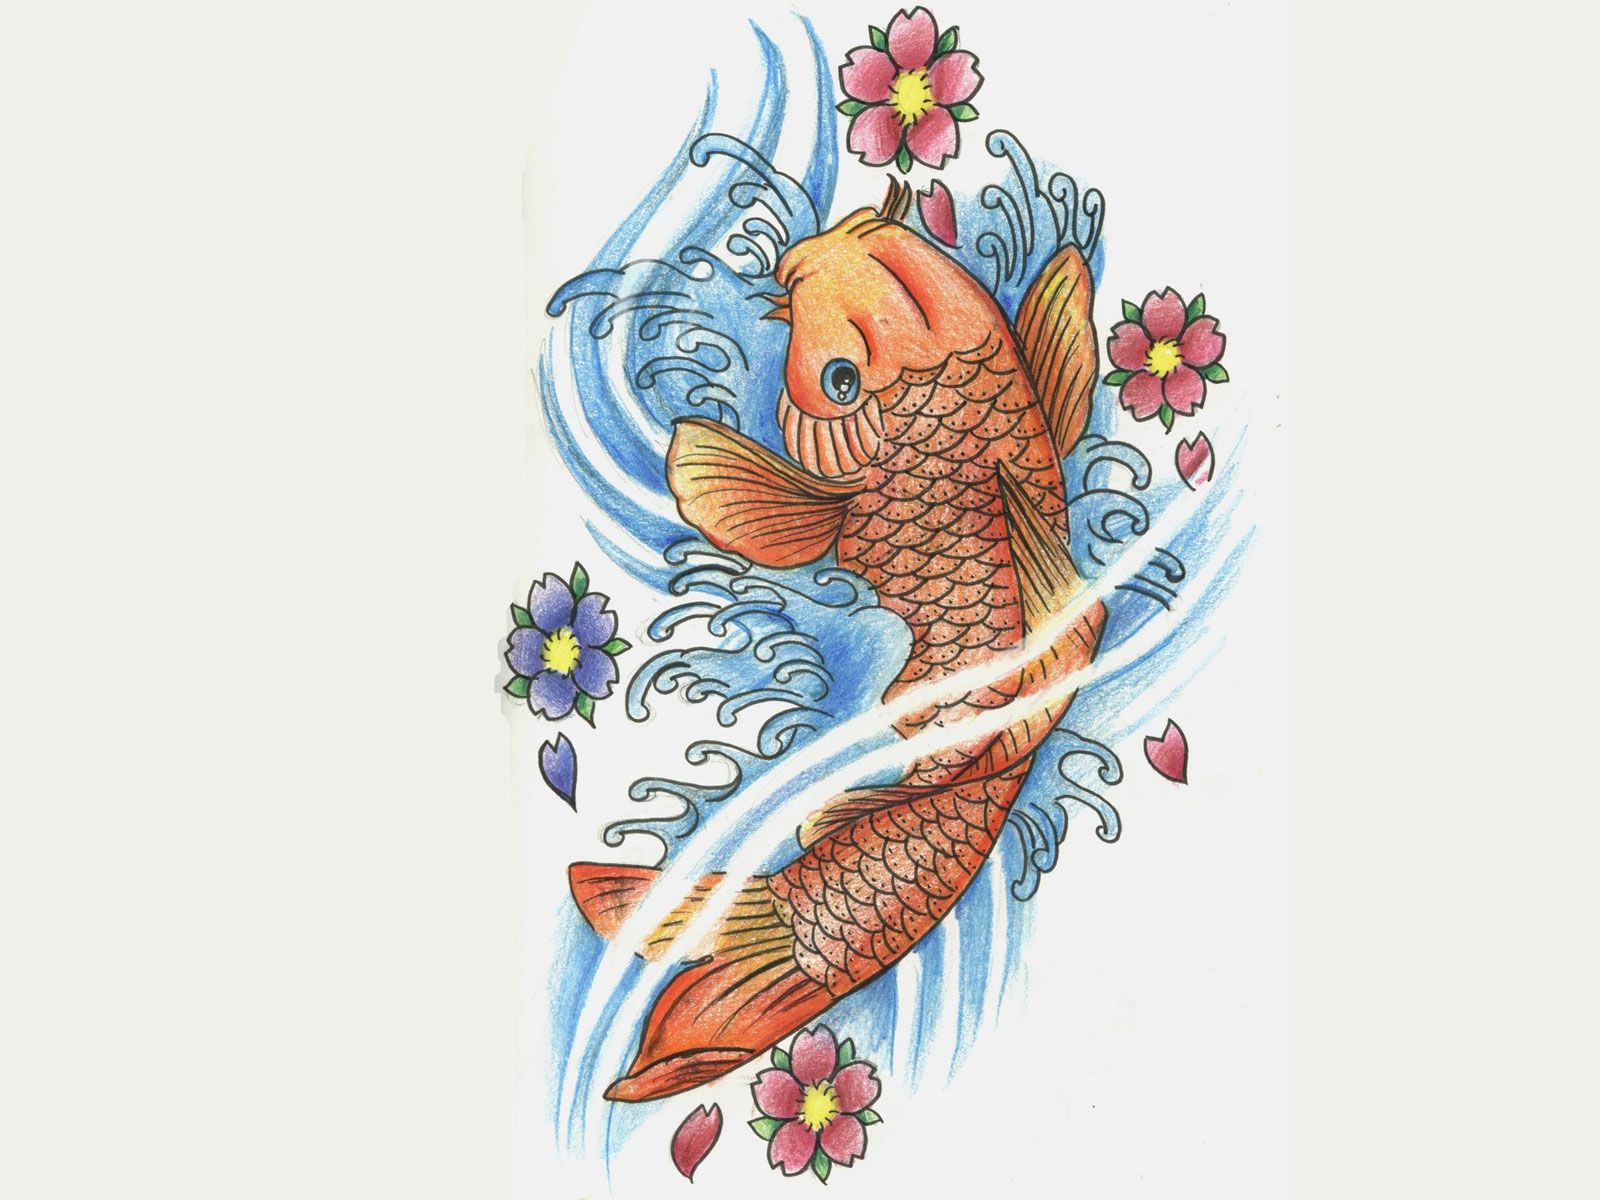 free designs orange coy carp and flowers wallpaper design 1600x1200 pixel new ink pinterest. Black Bedroom Furniture Sets. Home Design Ideas